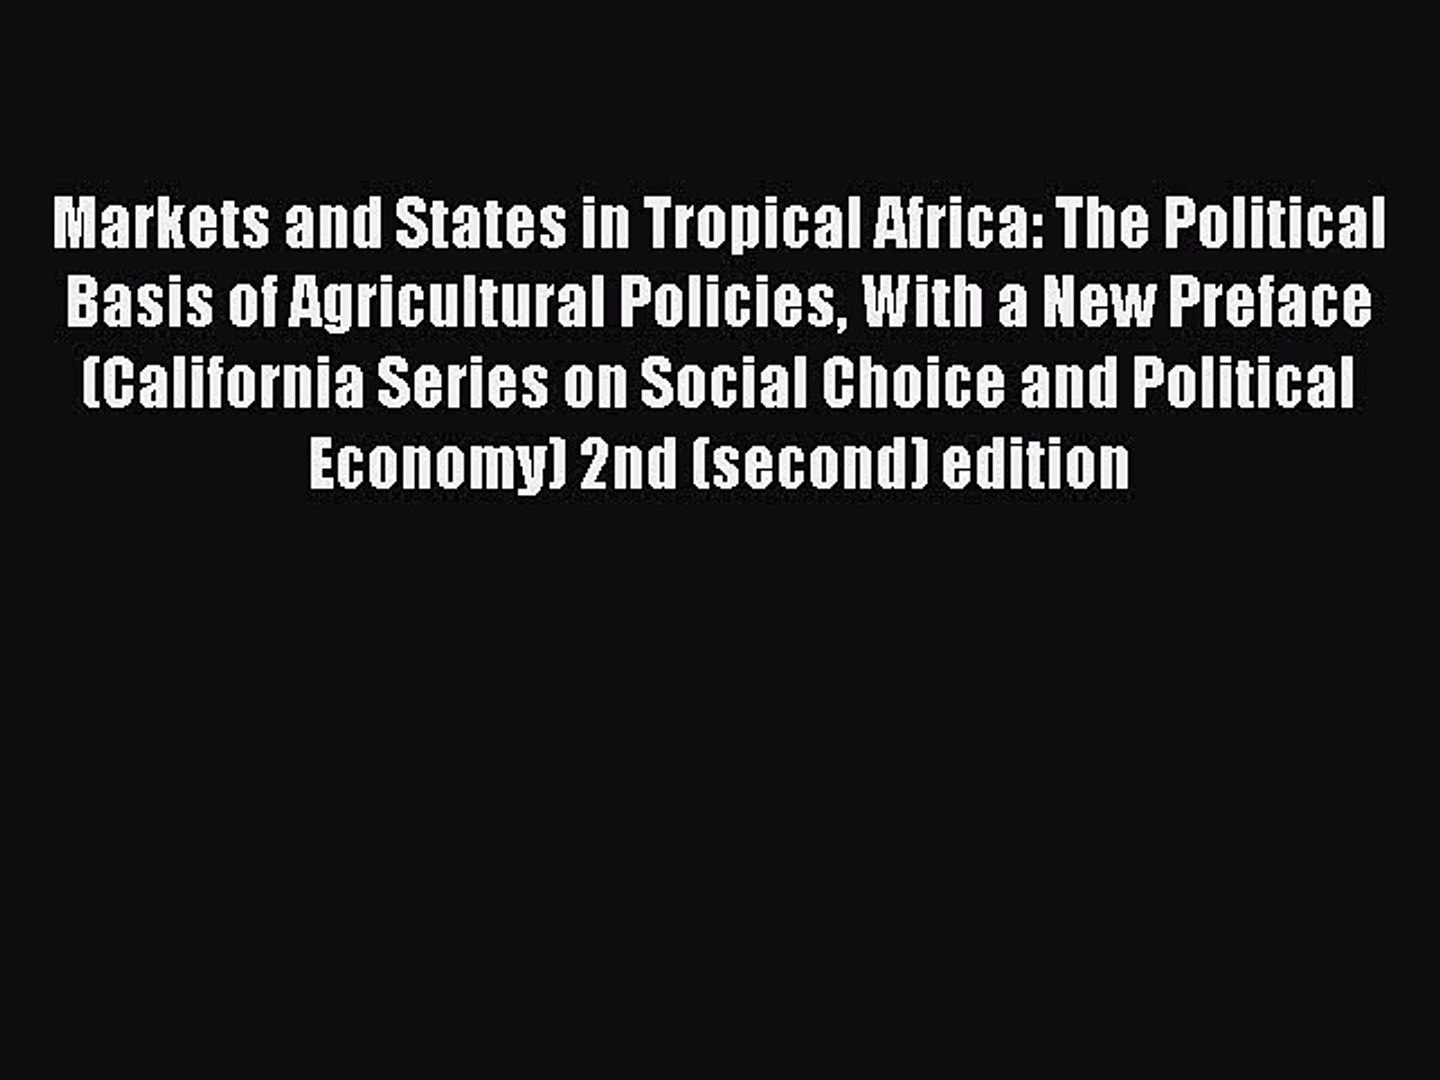 Read Markets and States in Tropical Africa: The Political Basis of Agricultural Policies With